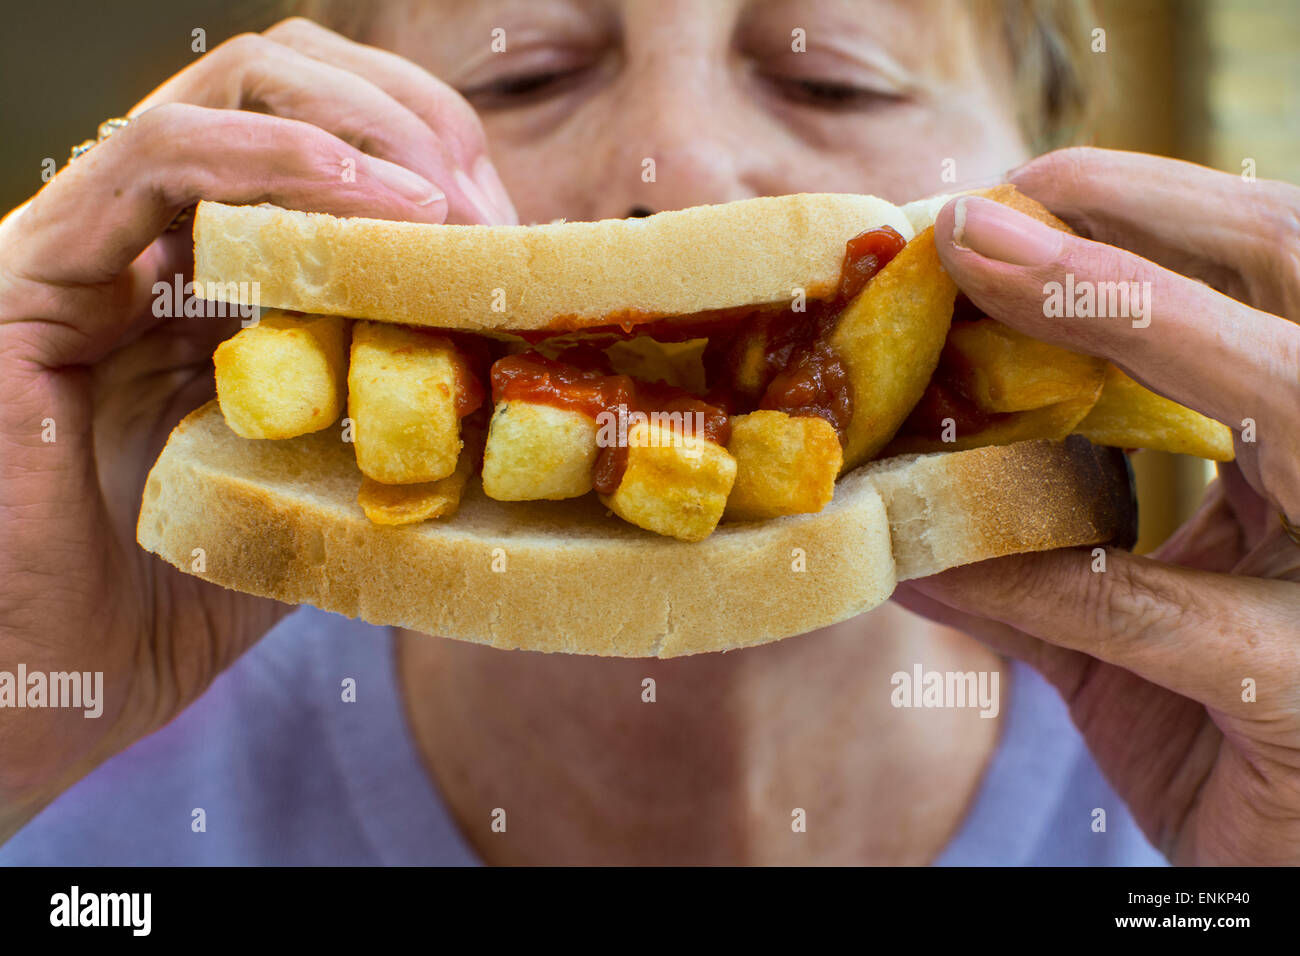 A Potato Chips Sandwich Commonly Known As A Chip Butty In The Uk Being Eaten By A Woman